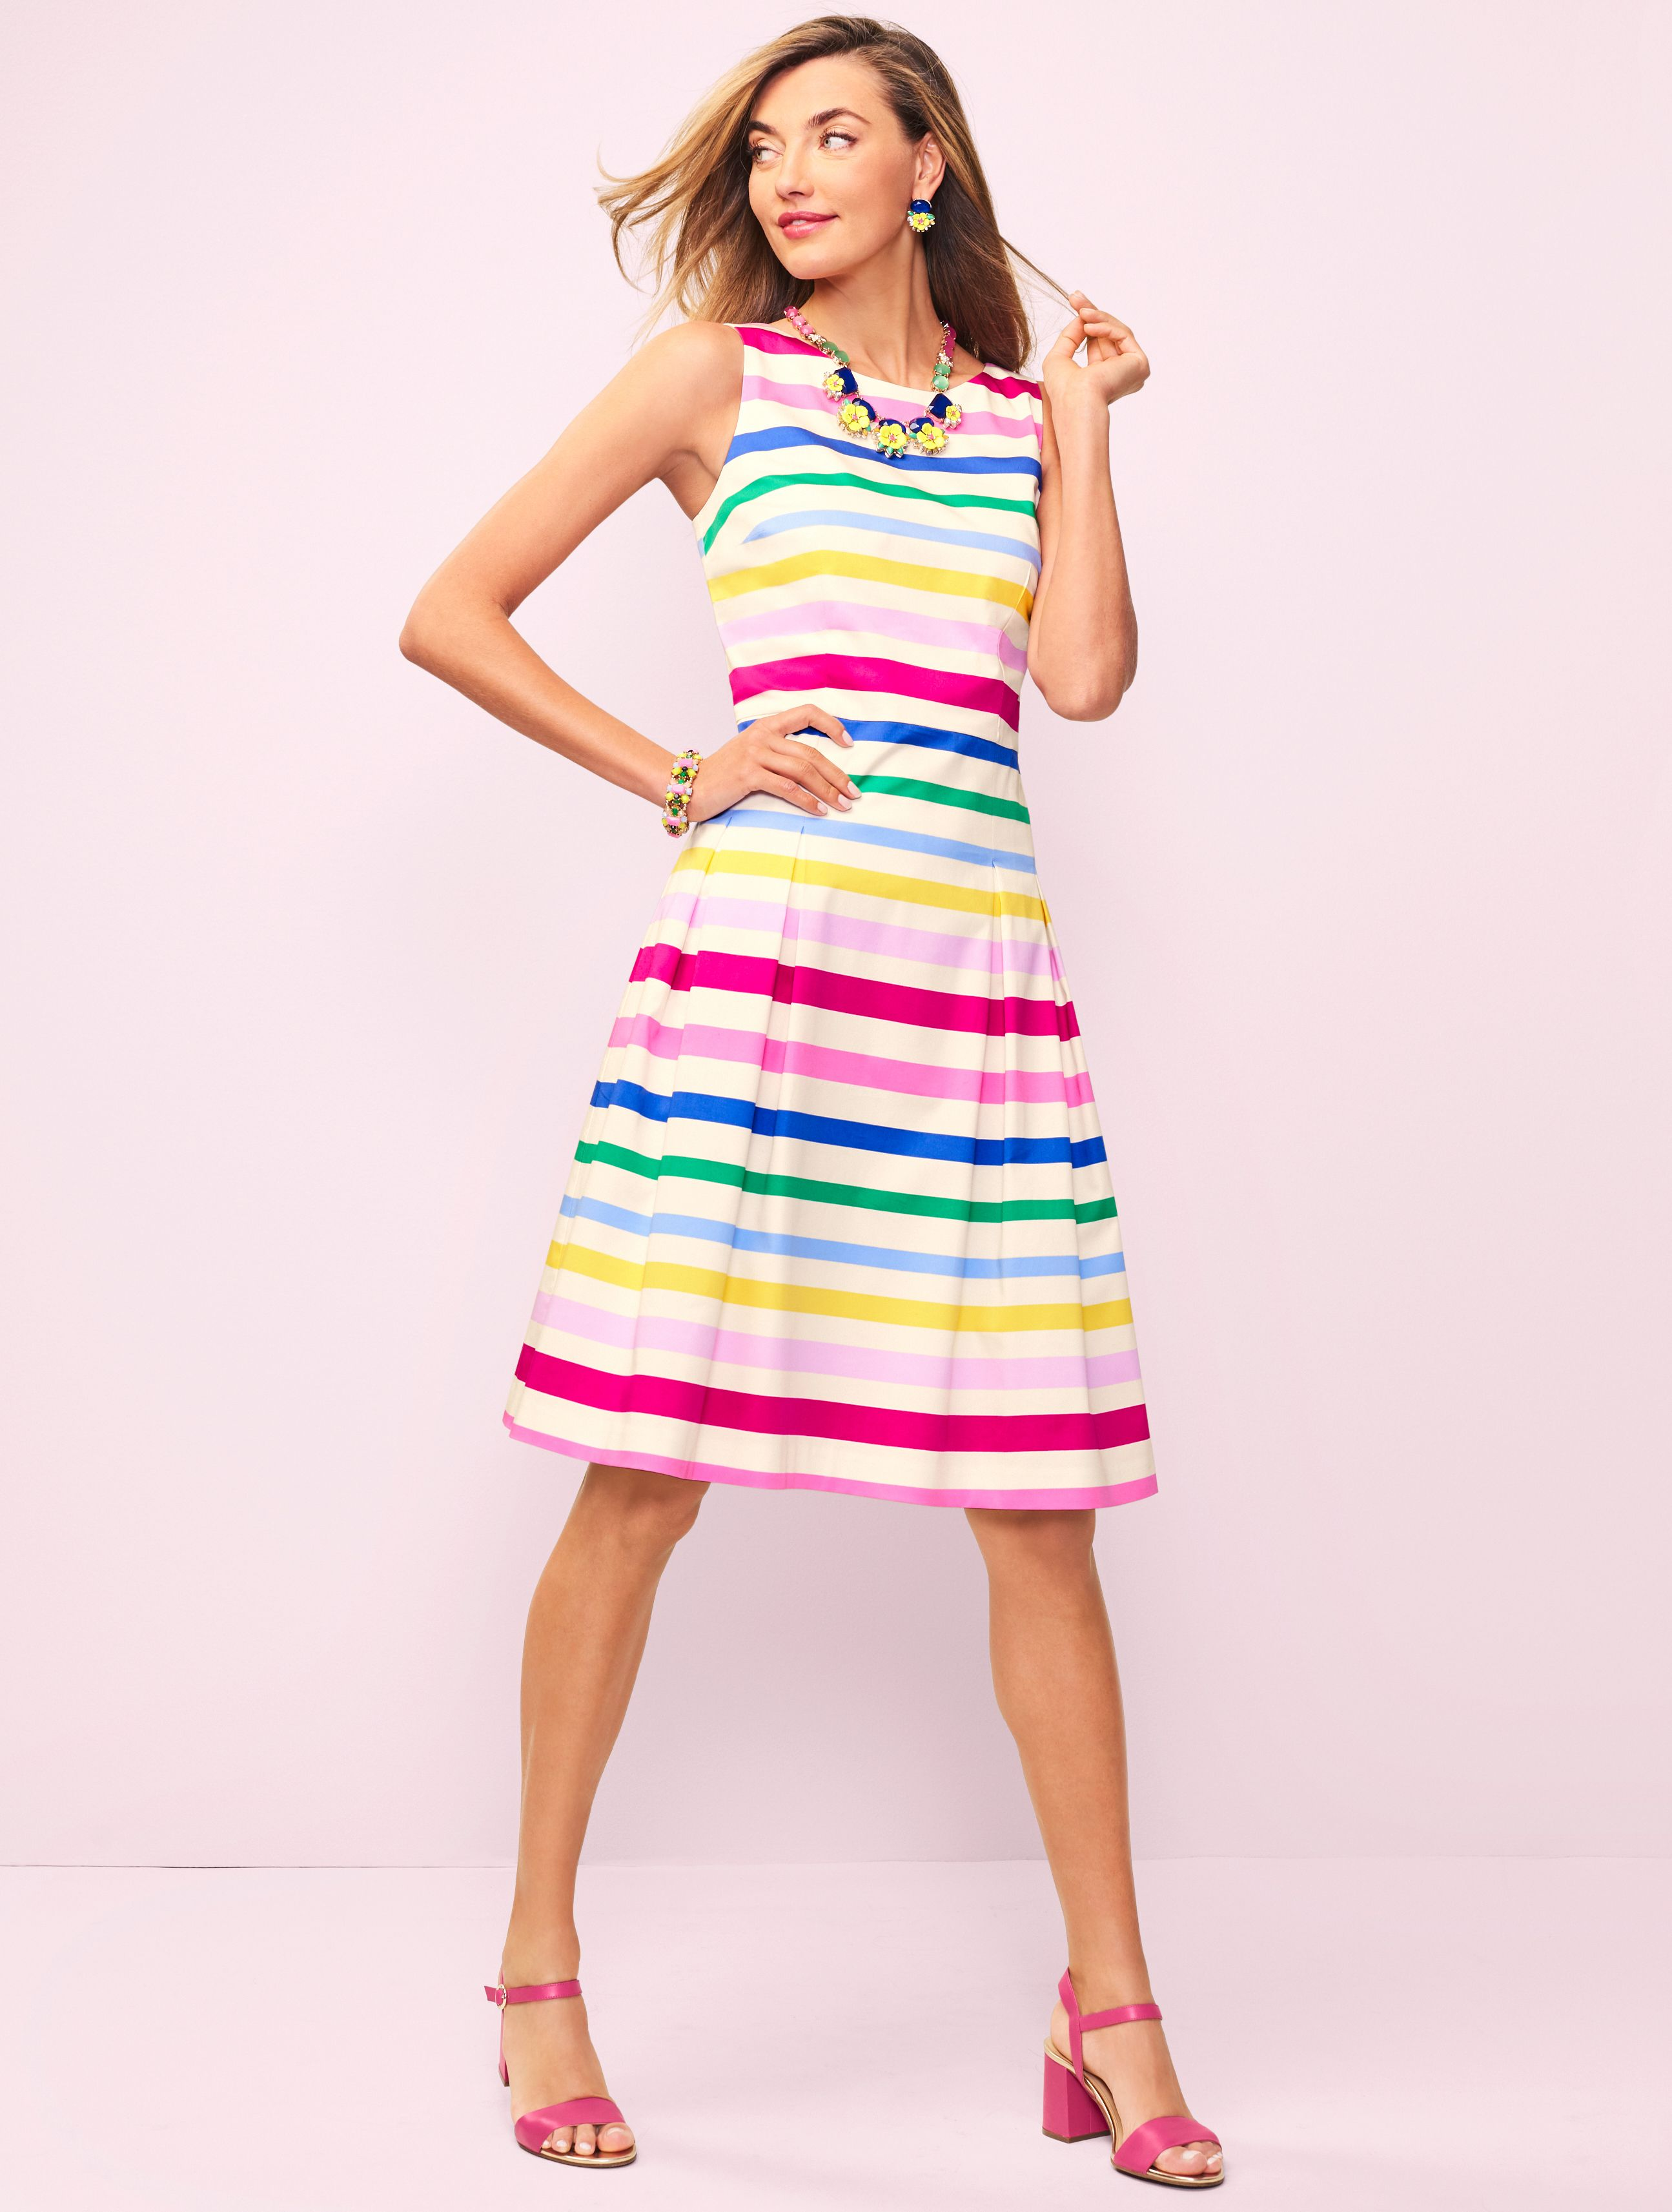 da0fd0e39b9 Quite possibly the perfect spring dress. A fun and flattering fit to  brighten any day - we like to call this our